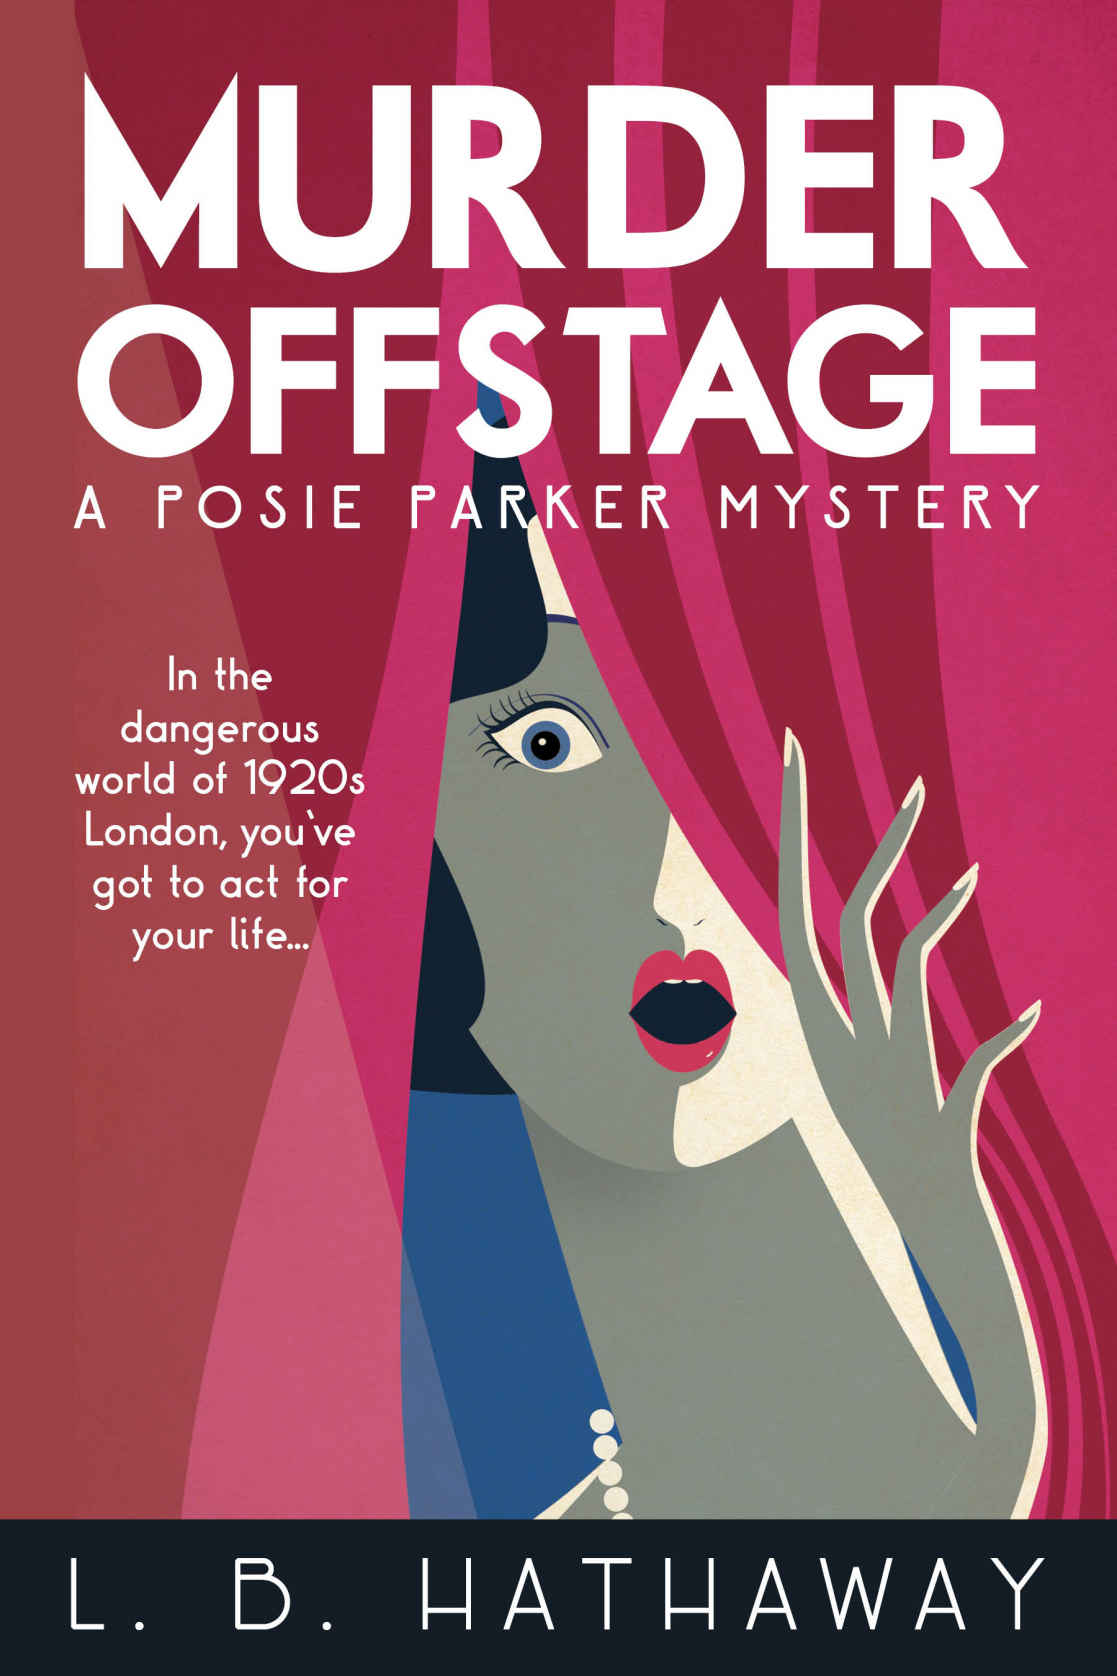 Murder Offstage: A Posie Parker Mystery (The Posie Parker Mystery Series Book 1) by L.B. Hathaway